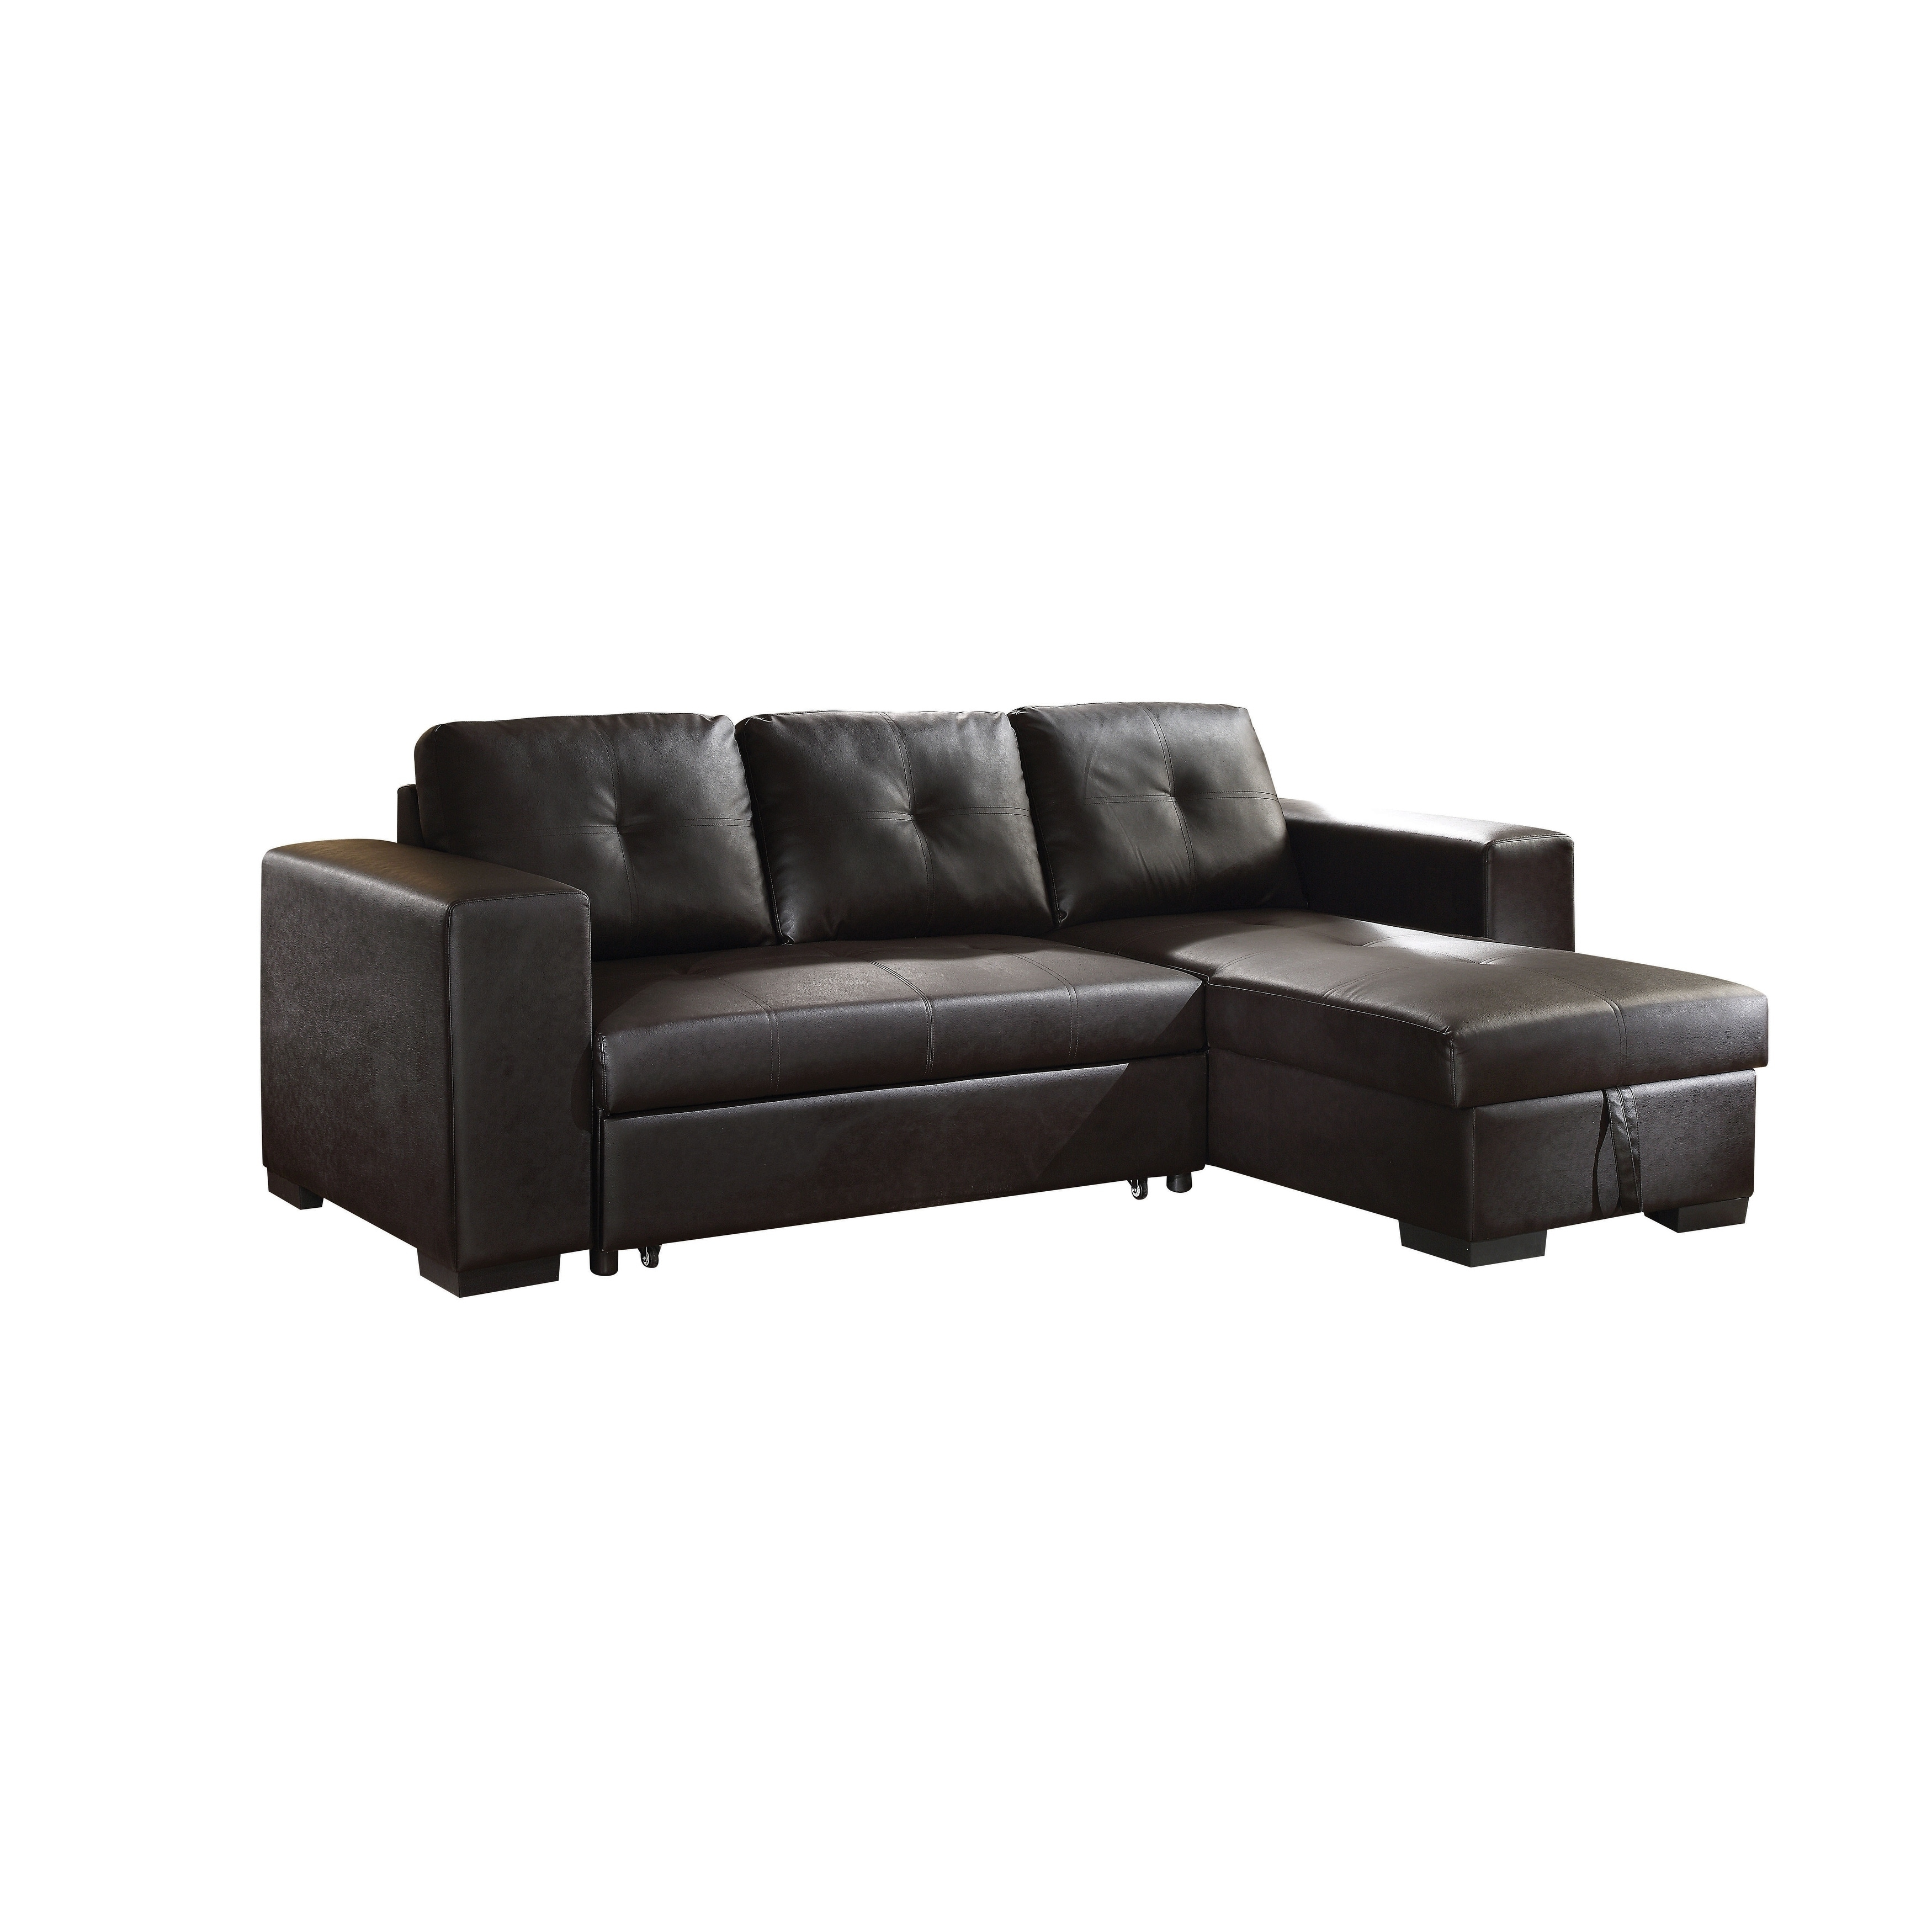 Product Image ACME Lloyd Sectional Sofa With Sleeper In Black Faux Leather